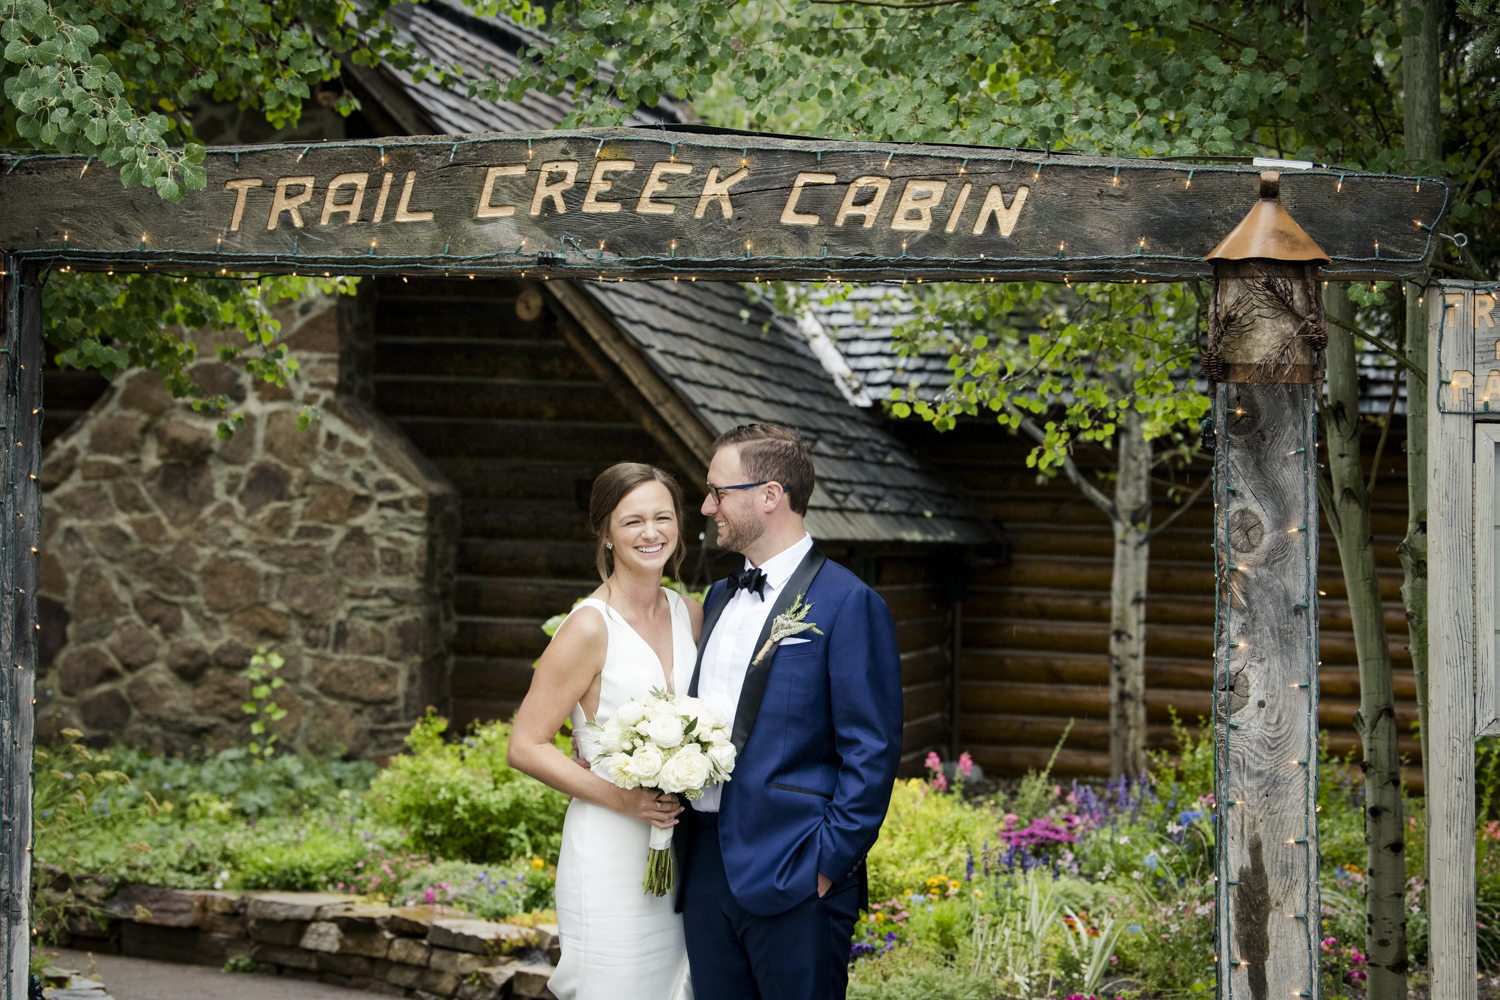 trailcreek_rainy_wedding-020.jpg